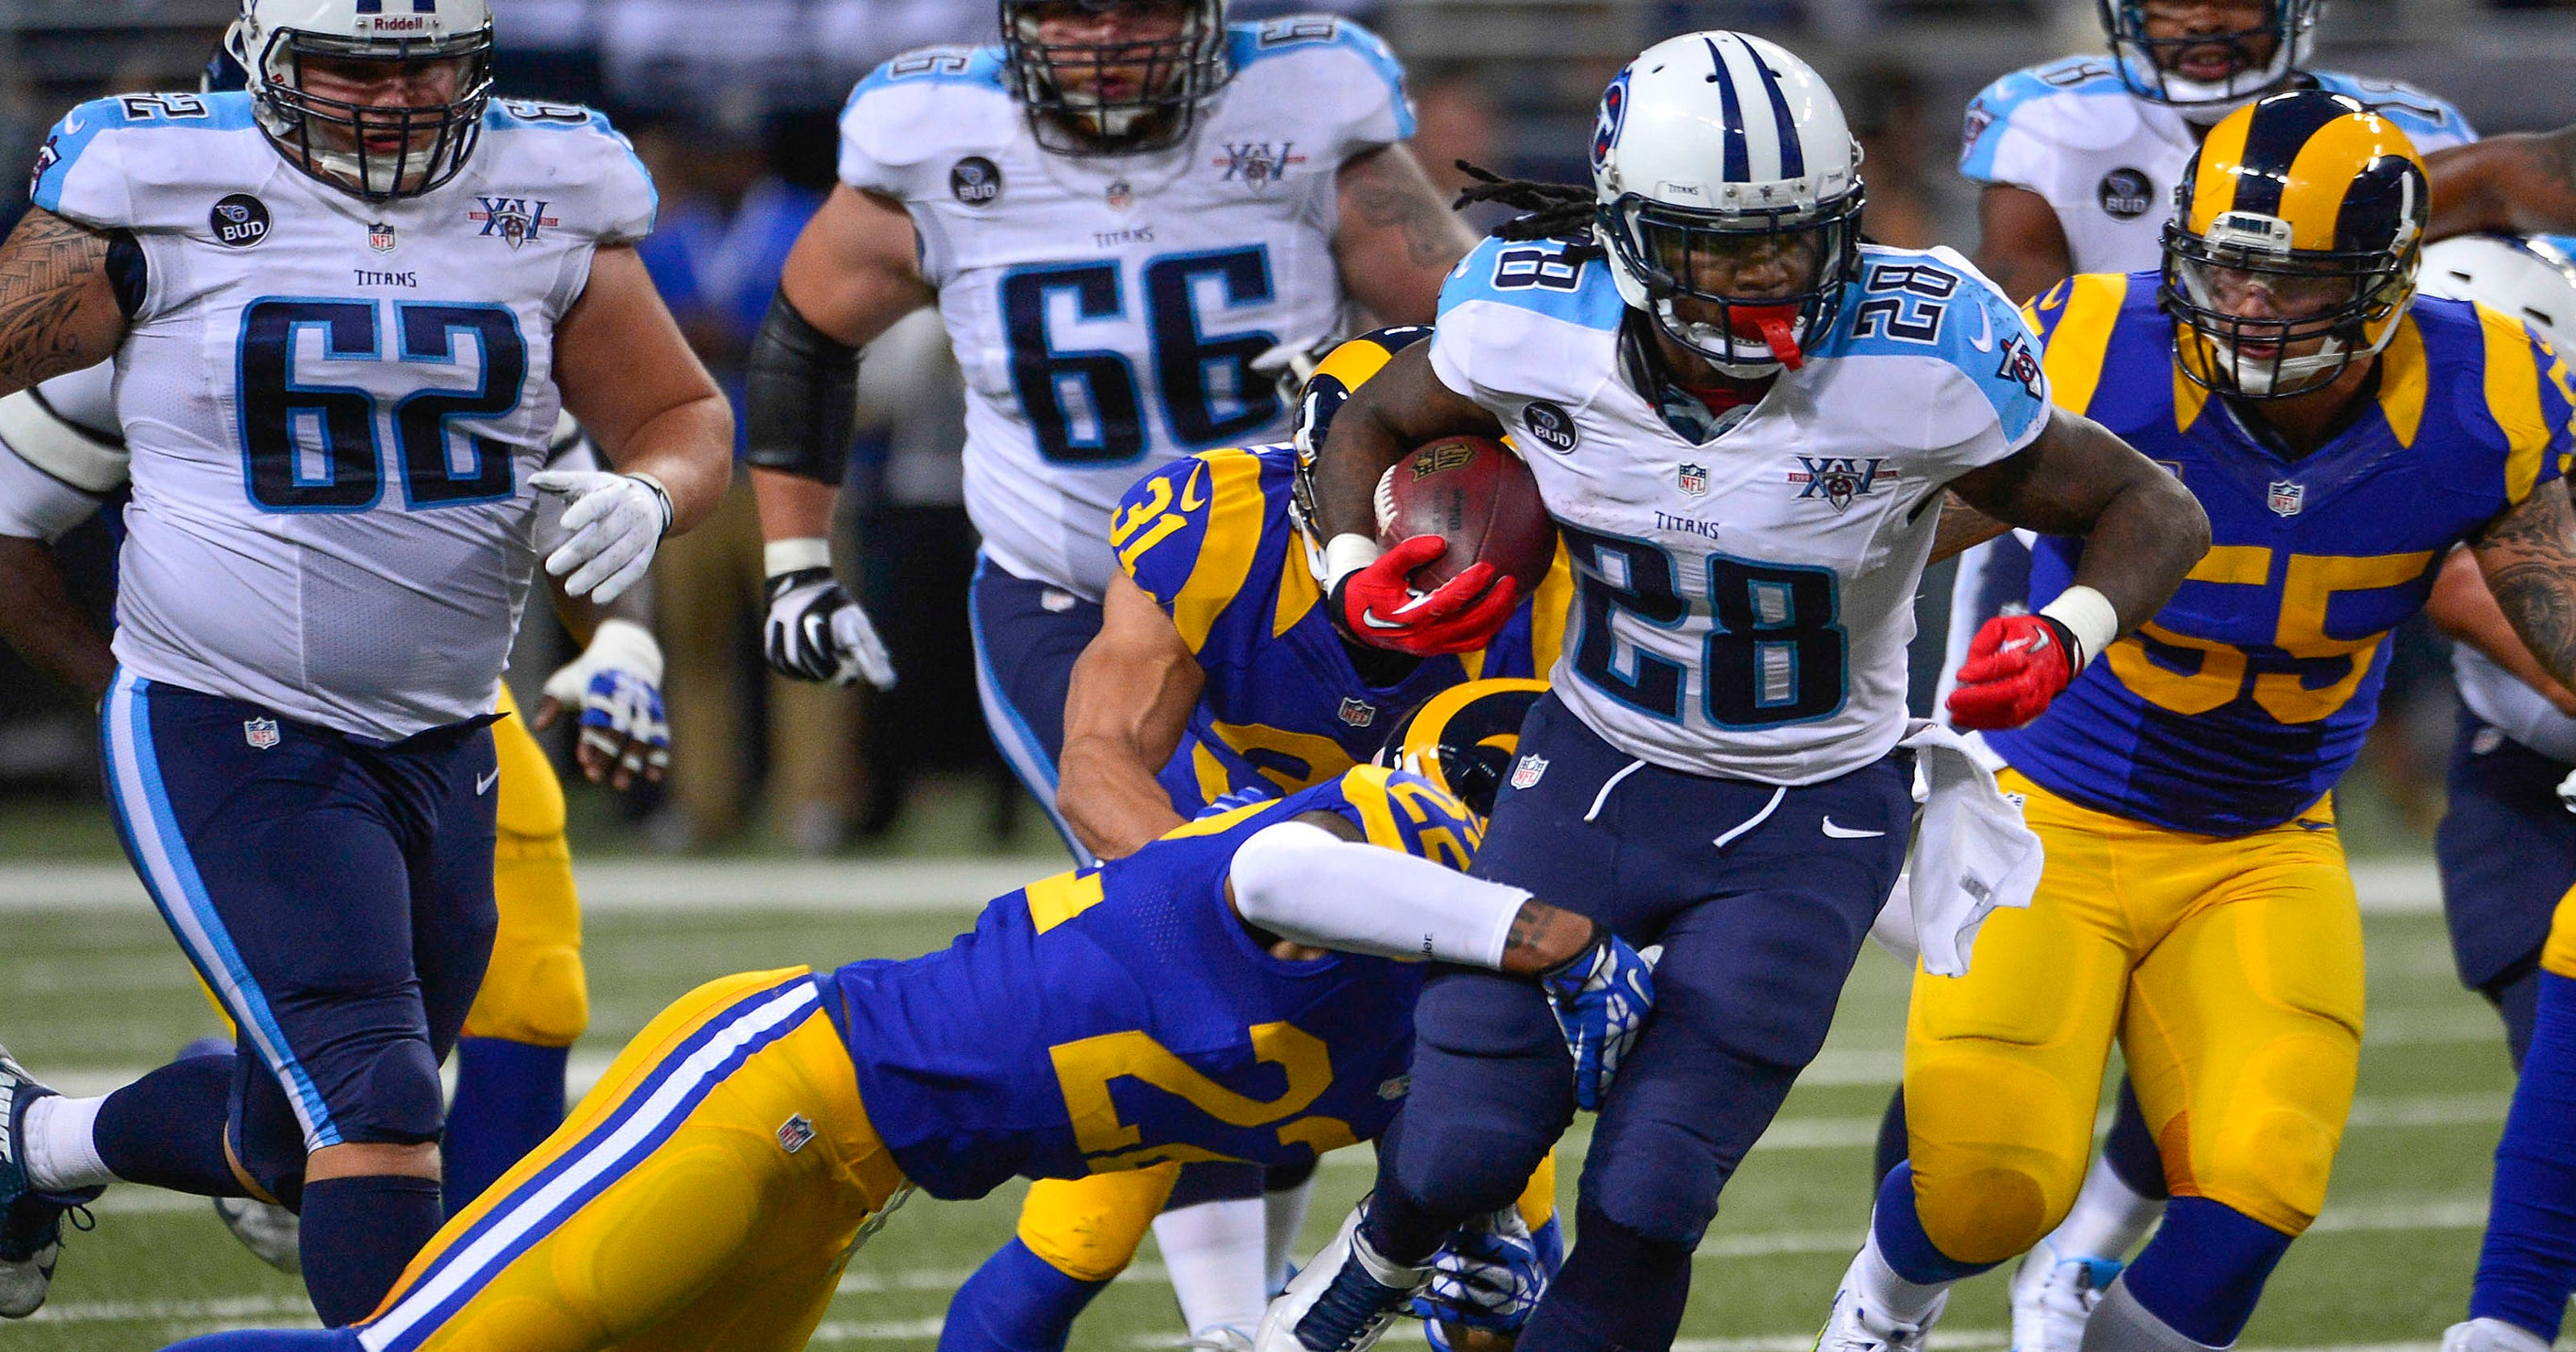 b73a2a16980 Chris Johnson explodes as Titans outlast Rams 28-21